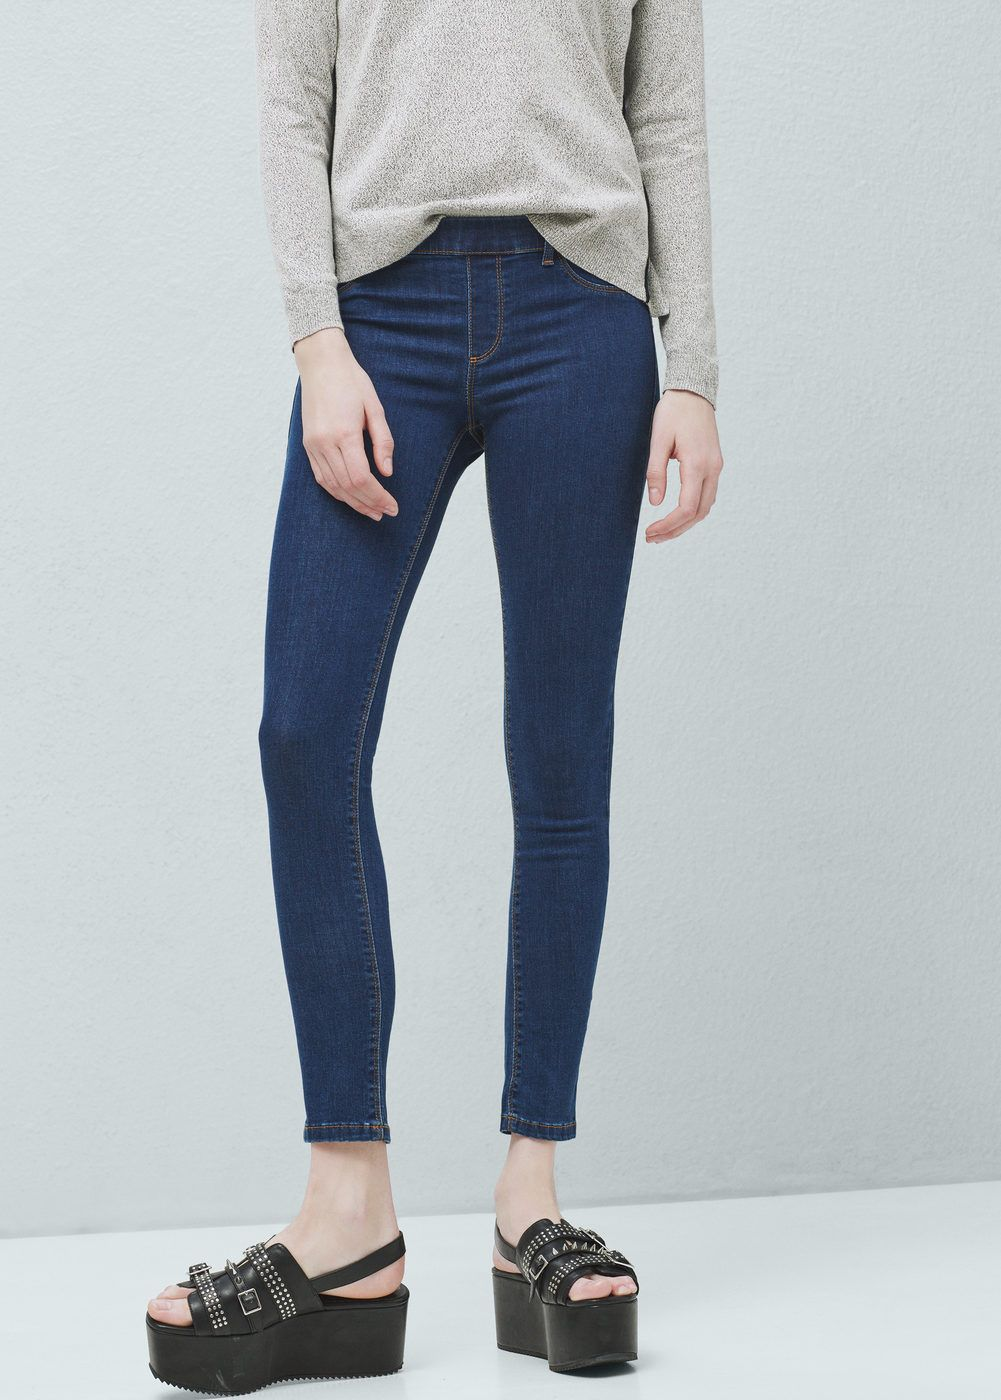 979953237 Jeggings oscuros piti - Mujer en 2019 | Jeans | Jeans oscuros, Jeans ...